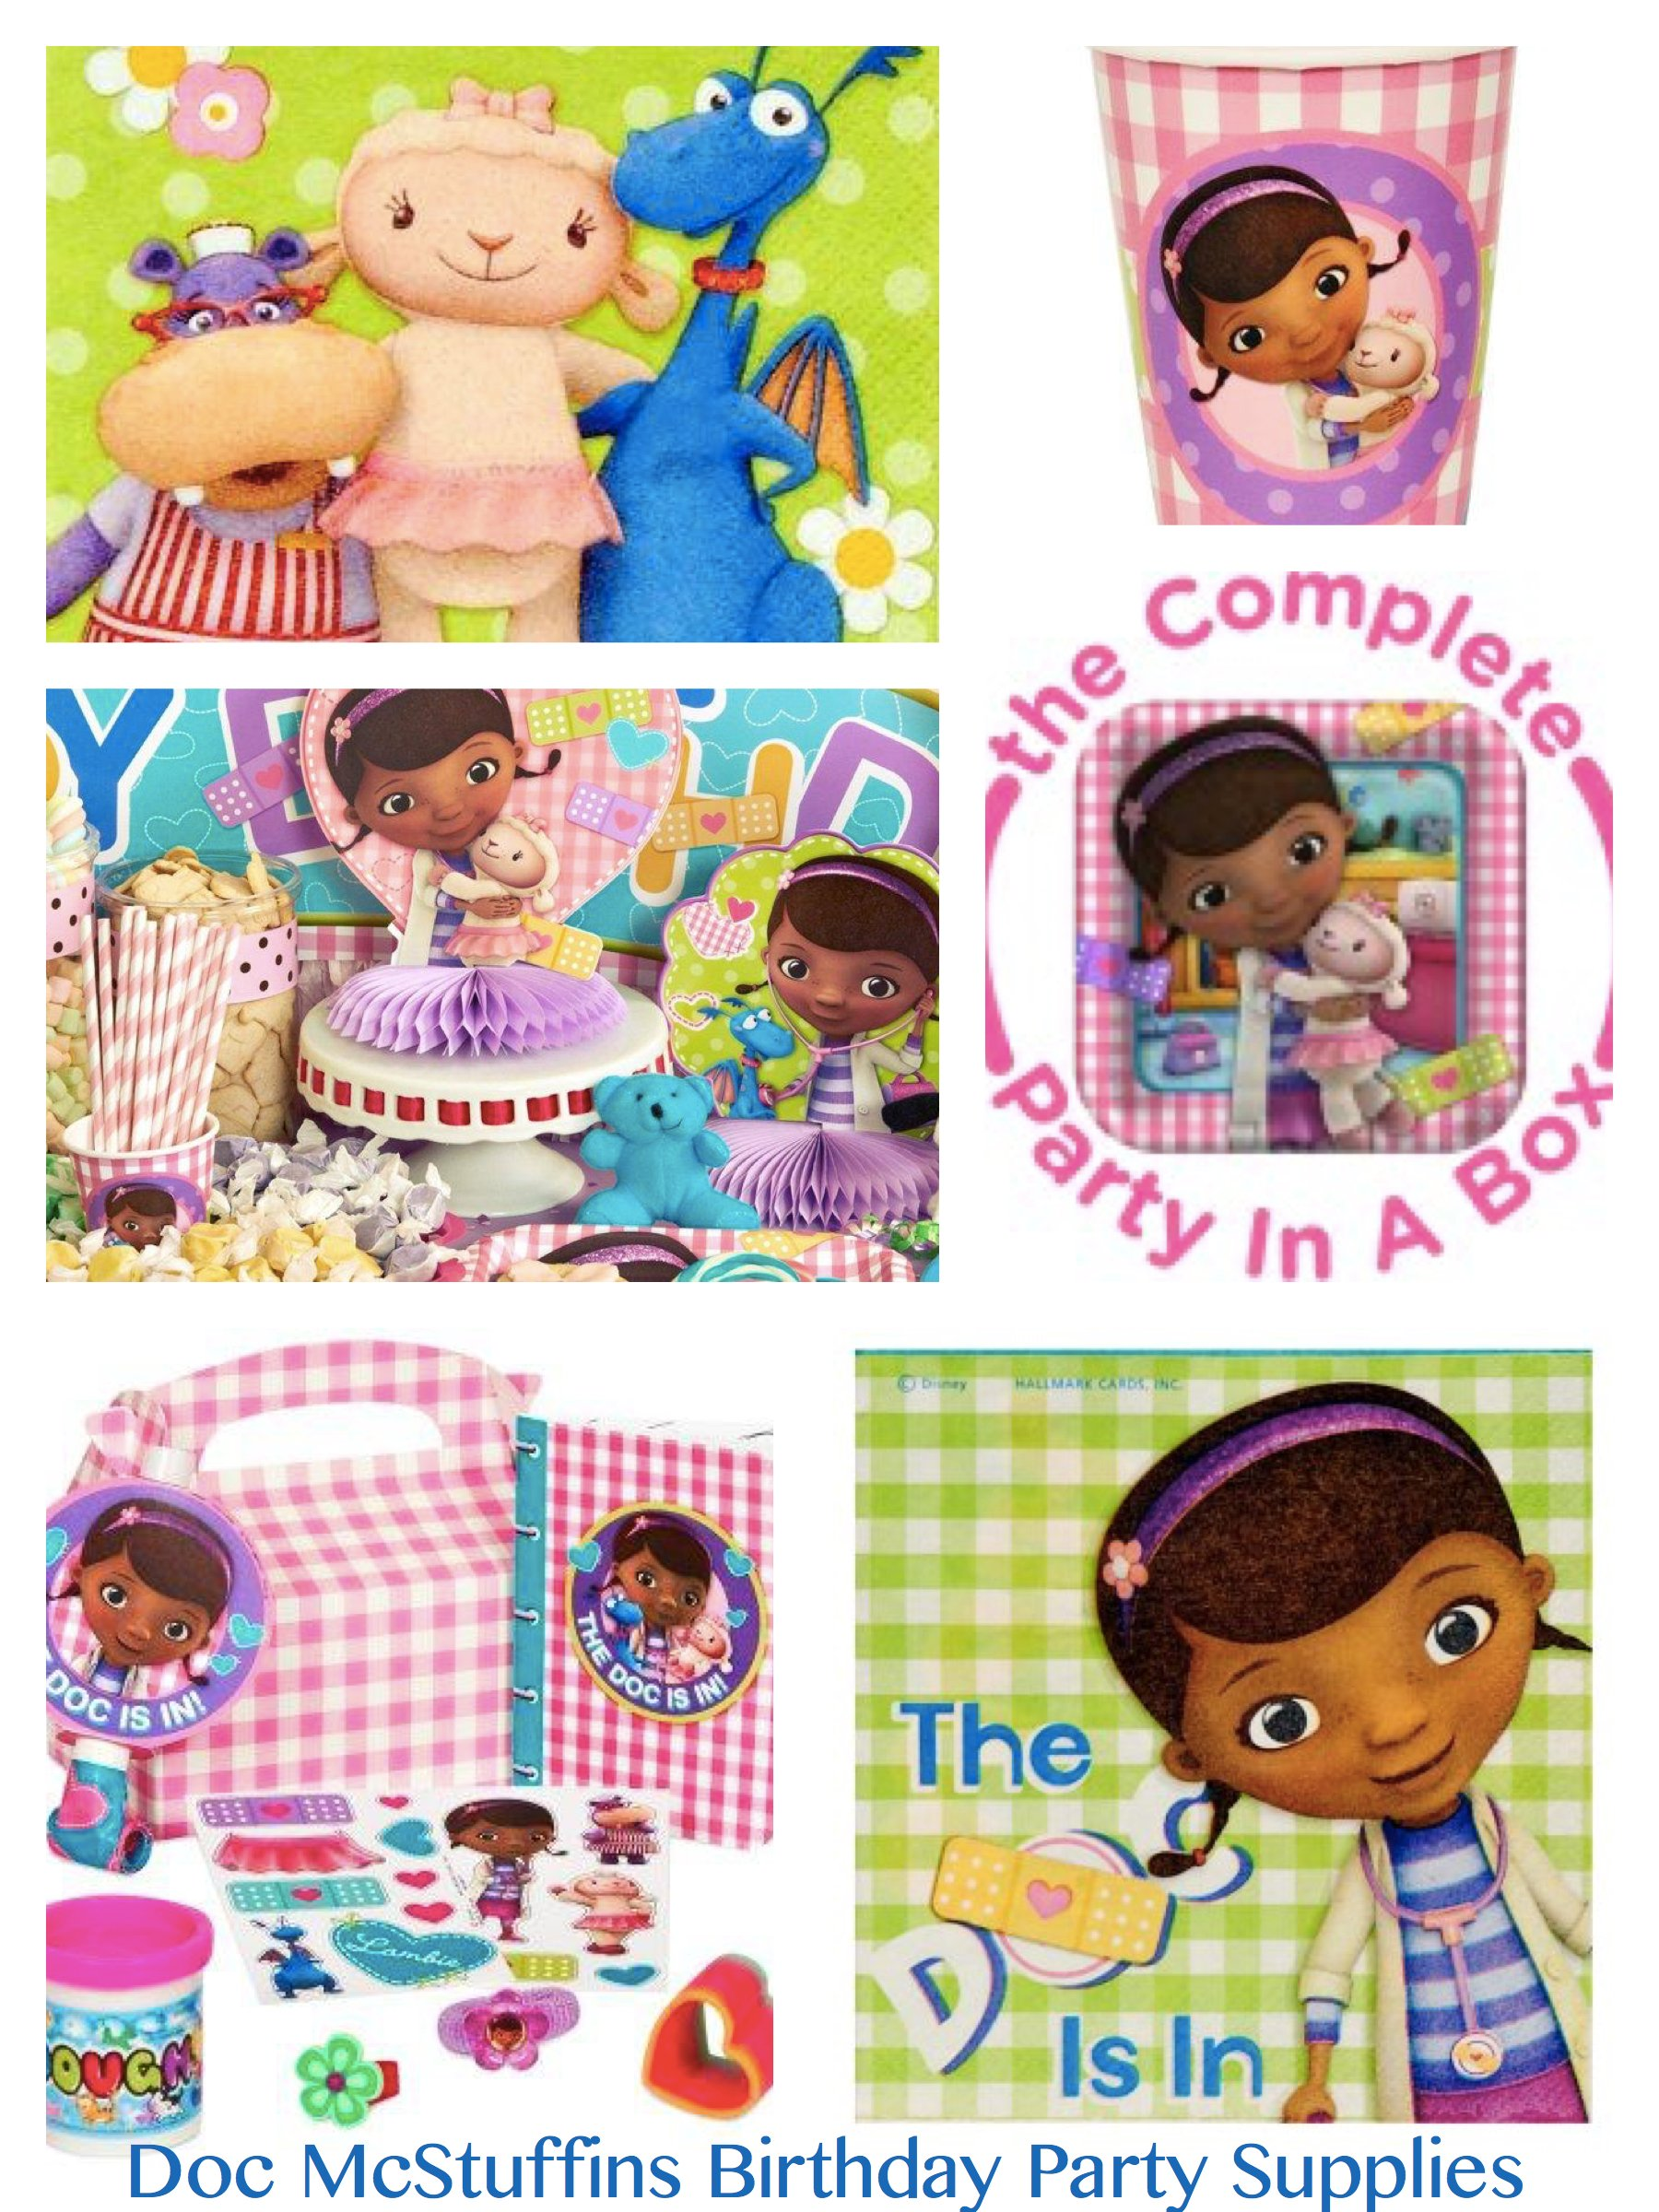 Doc McStuffins Birthday Party Supplies